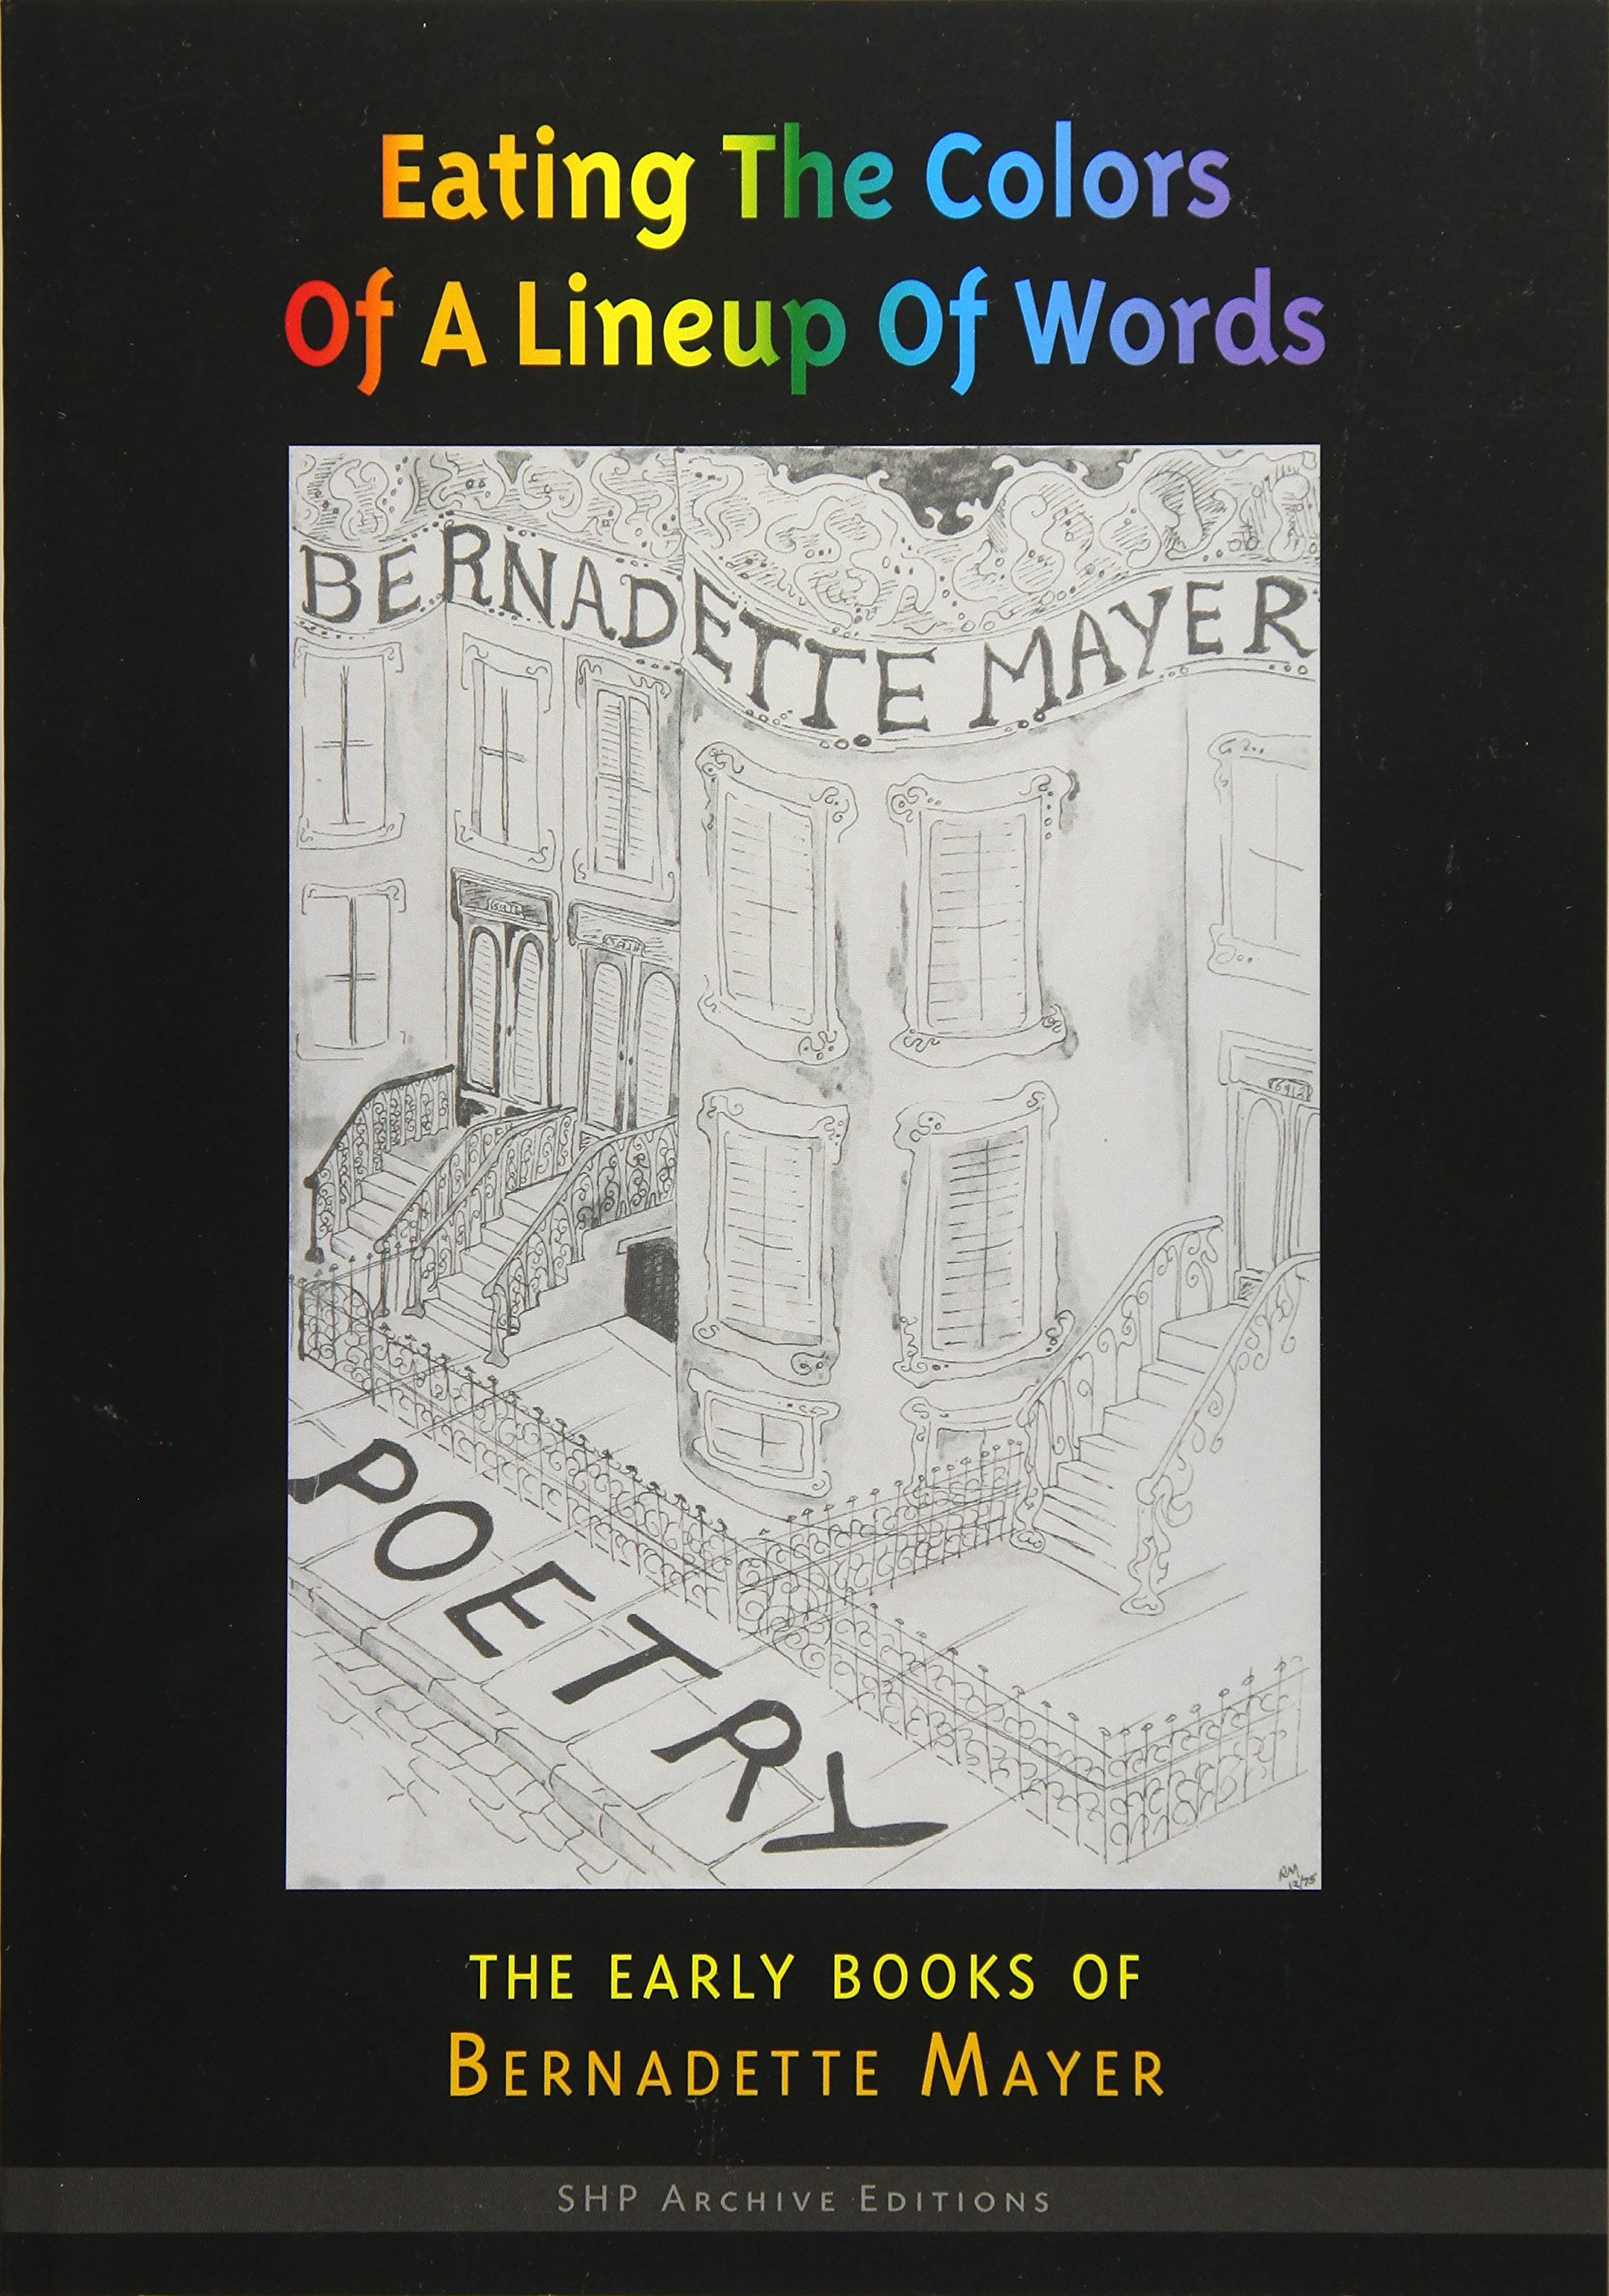 Eating the Colors of a Lineup of Words  The Collected Early Books of  Bernadette Mayer (Shp Archive Editions) Paperback – May 1 1d7aa059d